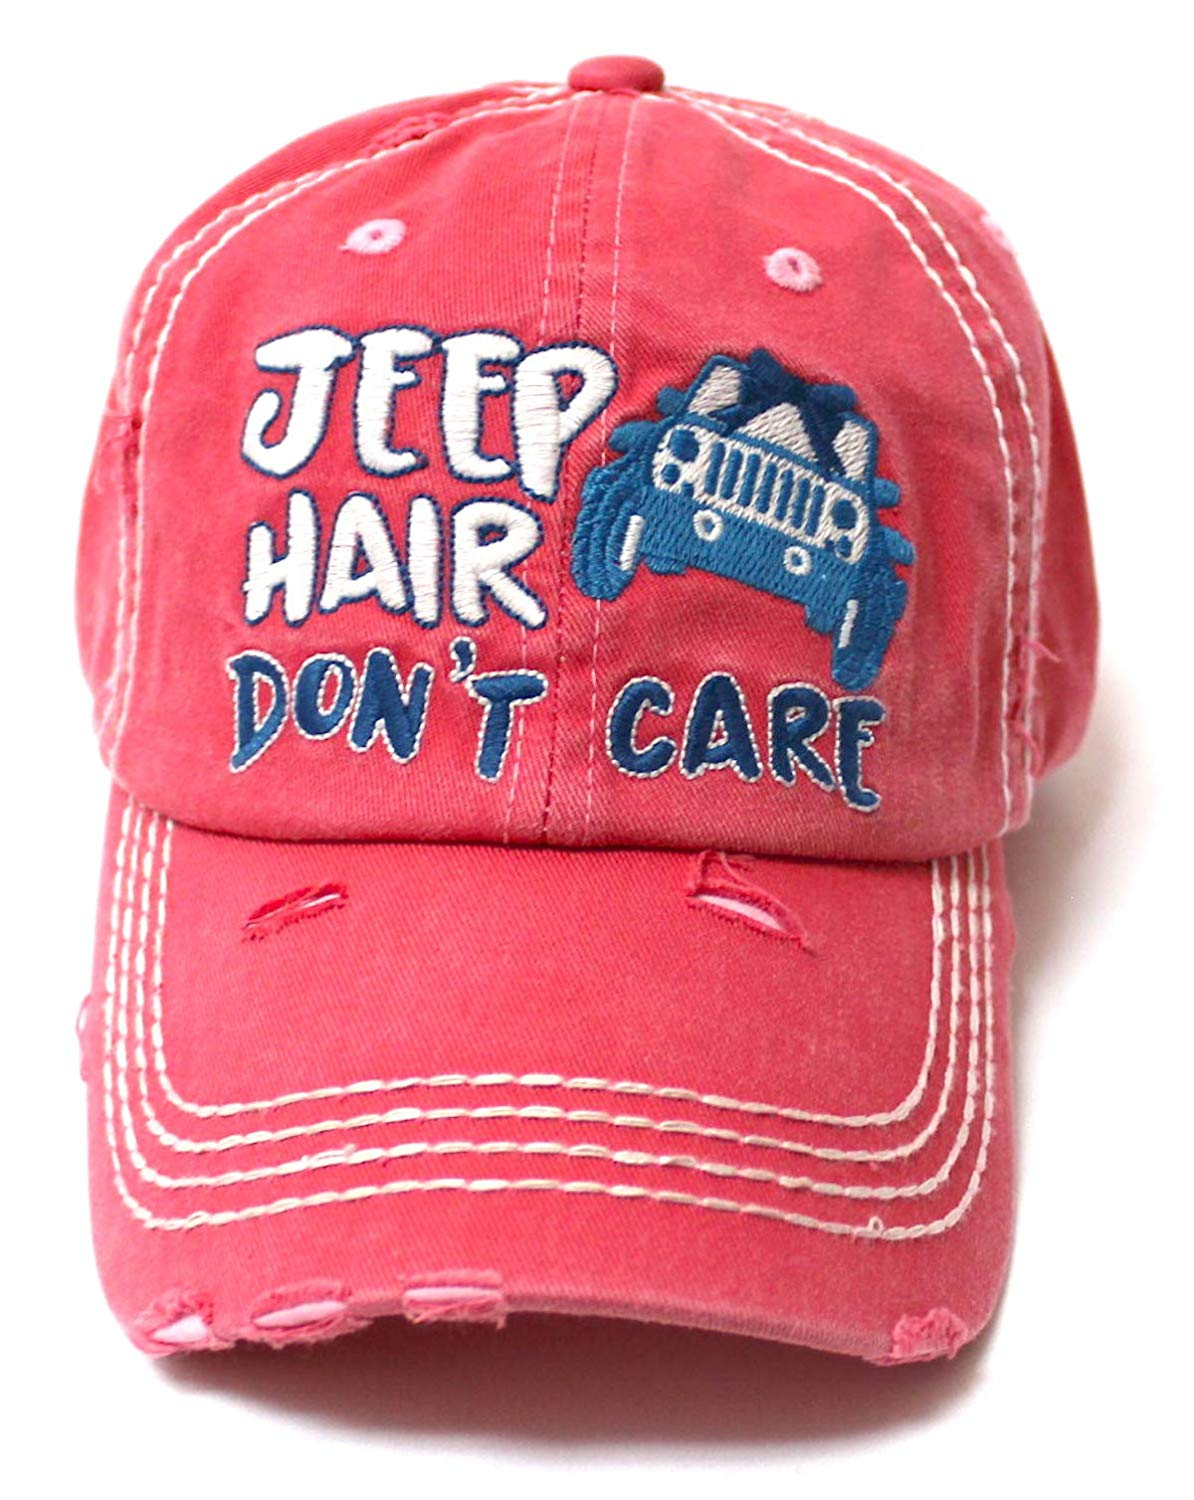 Ladies Bow-Tie Jeep Hair Don't Care Monogram Cheer Baseball Hat, Rose Pink - Caps 'N Vintage